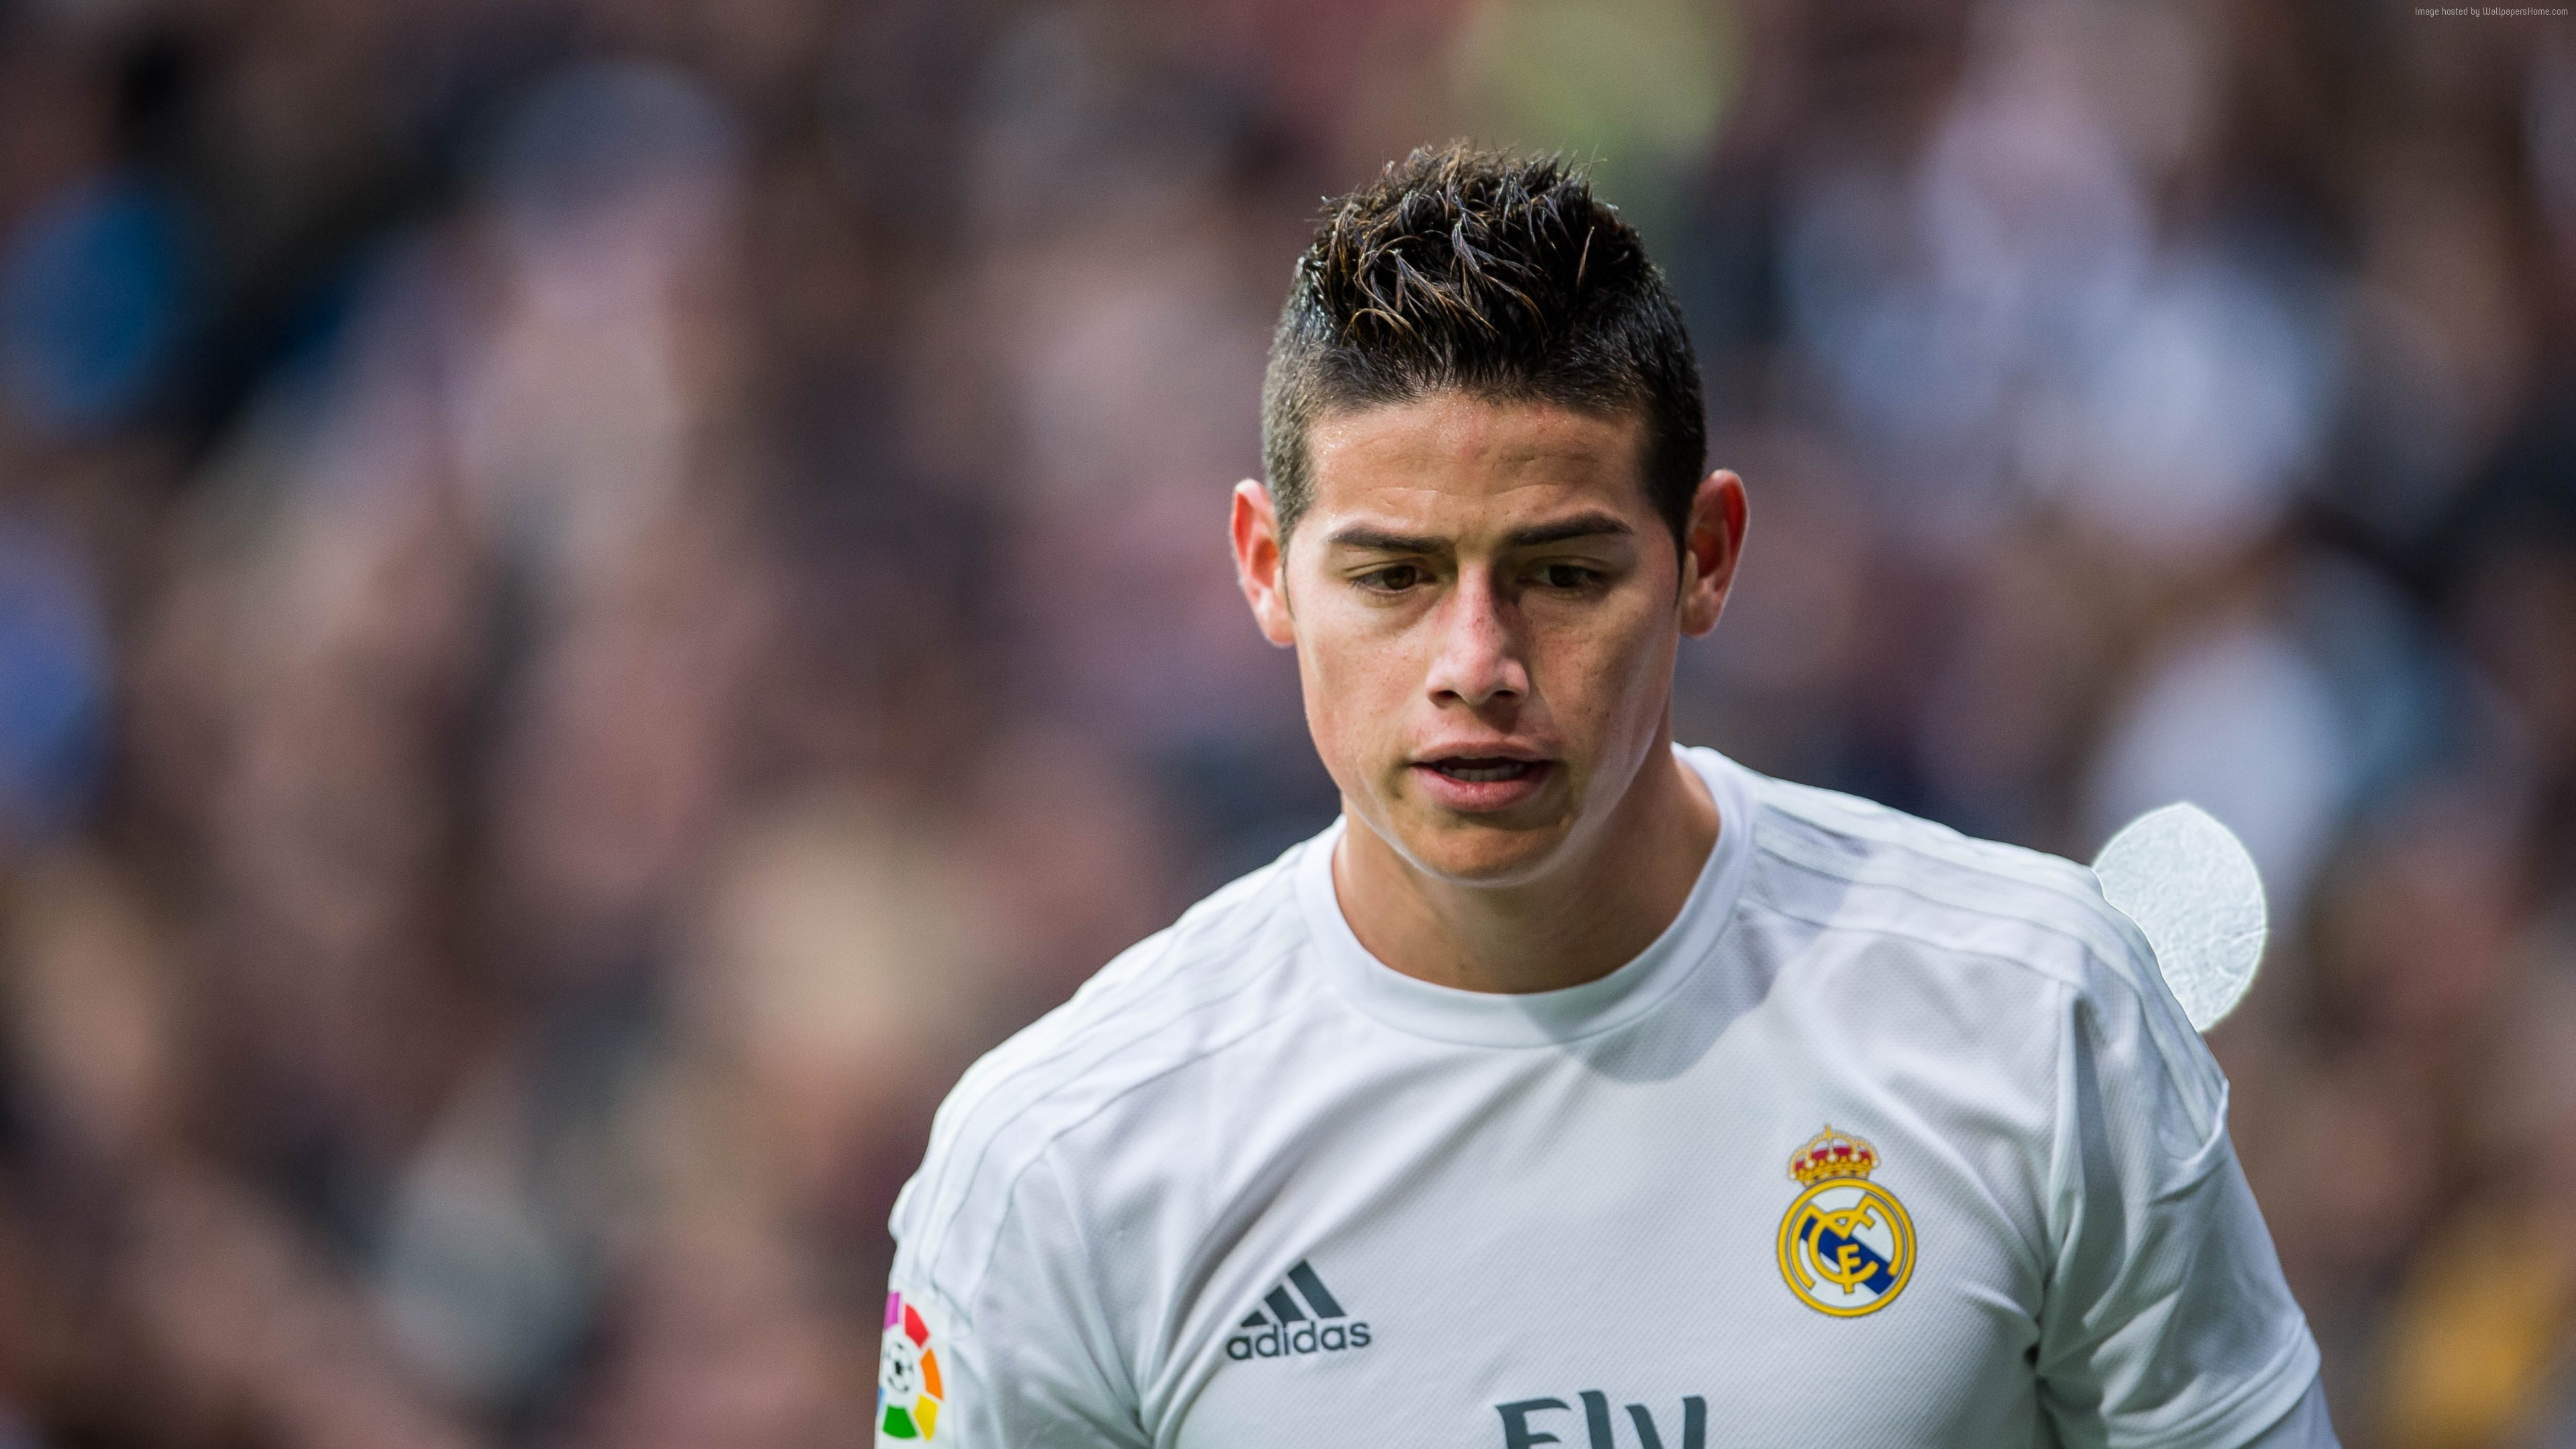 Wallpaper Football, James Rodríguez, The best players 2016, FIFA World Cup, Real Madrid, footballer, James David Rodríguez Rubio, Sport